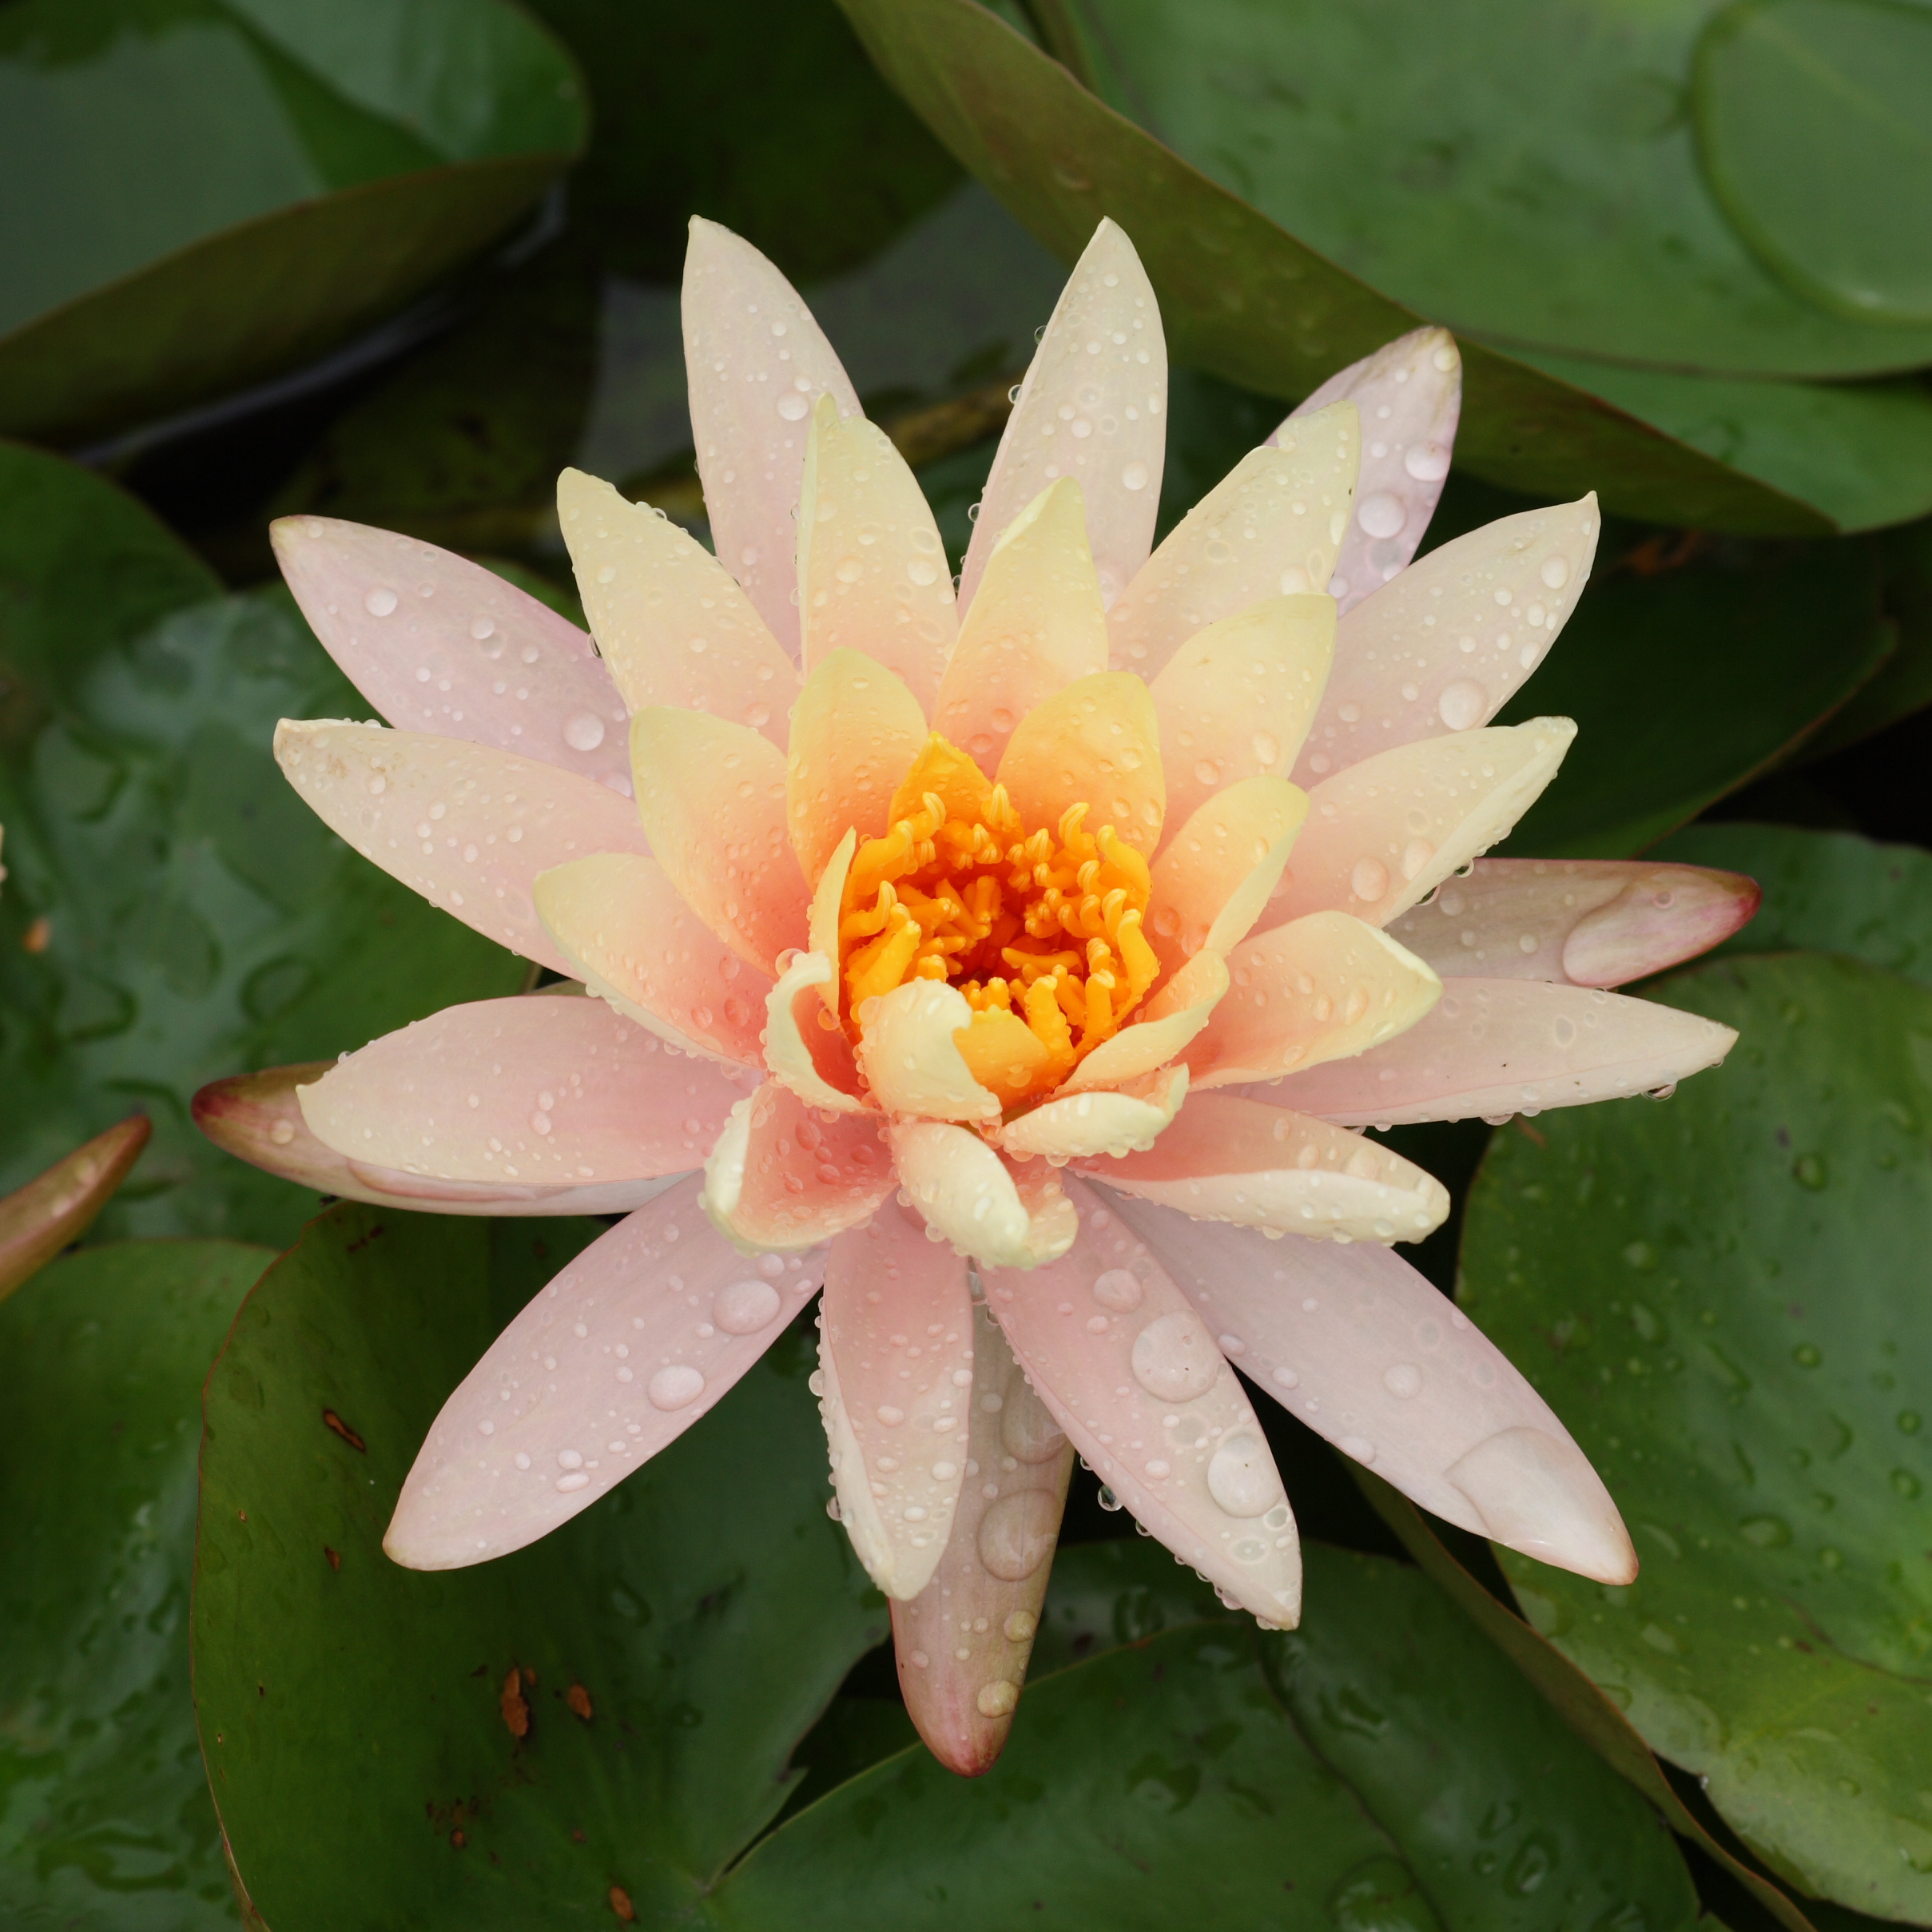 Nymphaea wikipedia peach glow water lily at brooklyn botanic gardeng izmirmasajfo Choice Image